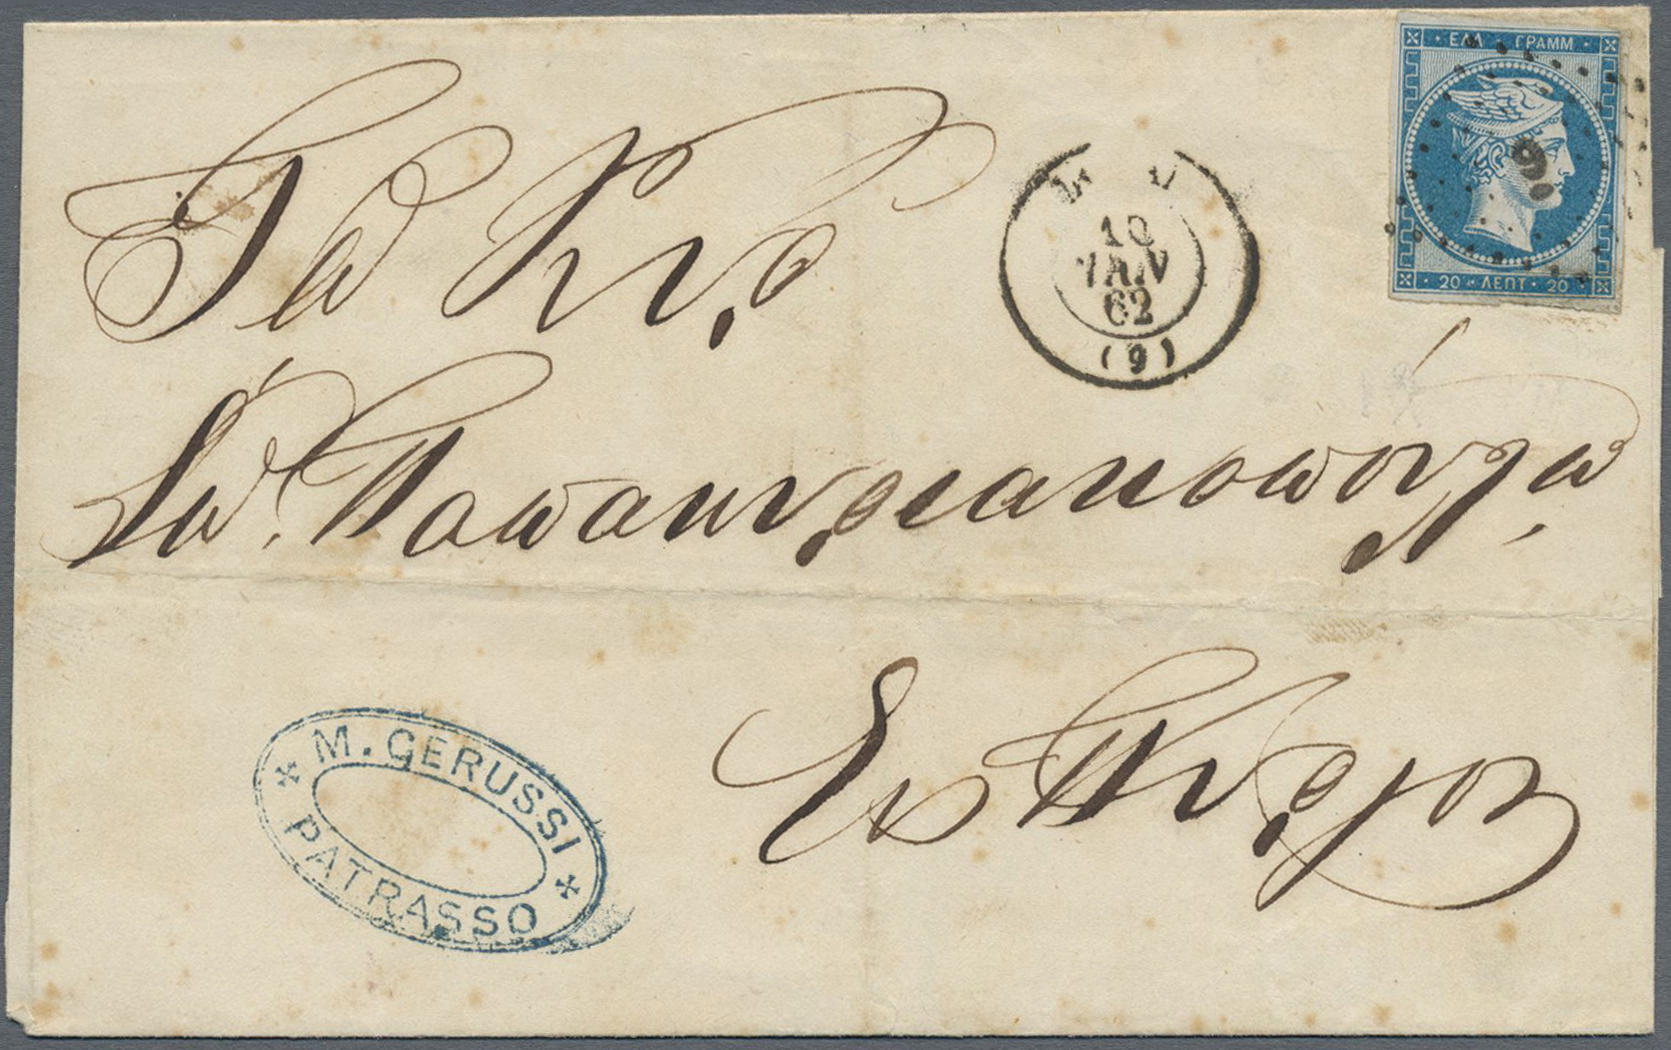 Lot 16496 - griechenland  -  Auktionshaus Christoph Gärtner GmbH & Co. KG Single lots Philately Overseas & Europe. Auction #39 Day 4